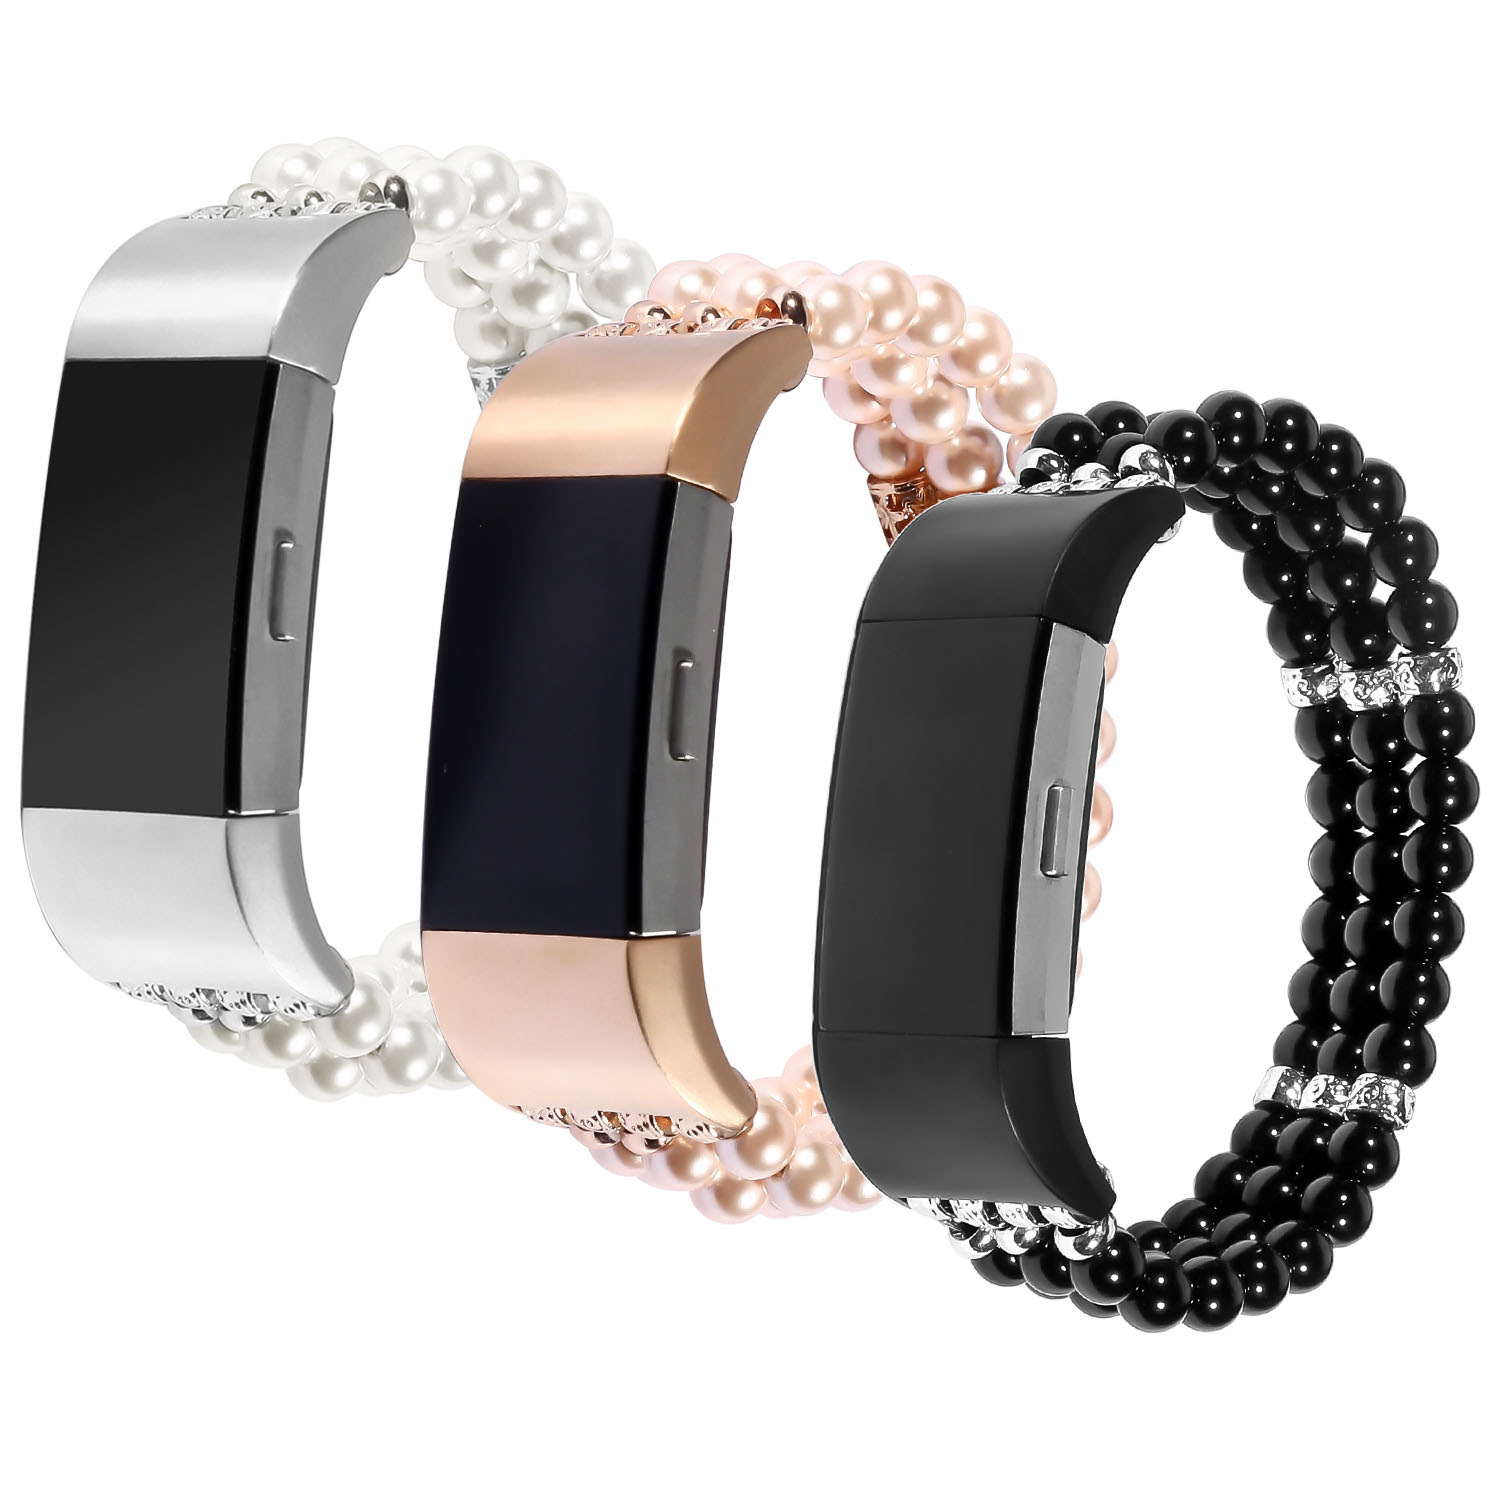 US $15 65 40% OFF|New Jewel Pearl Stretch Watch Band for Fitbit Charge 2  Strap Women's Girls' Bracelet for Fitbit Charge 2 Smart Wrist band 3PZ-in